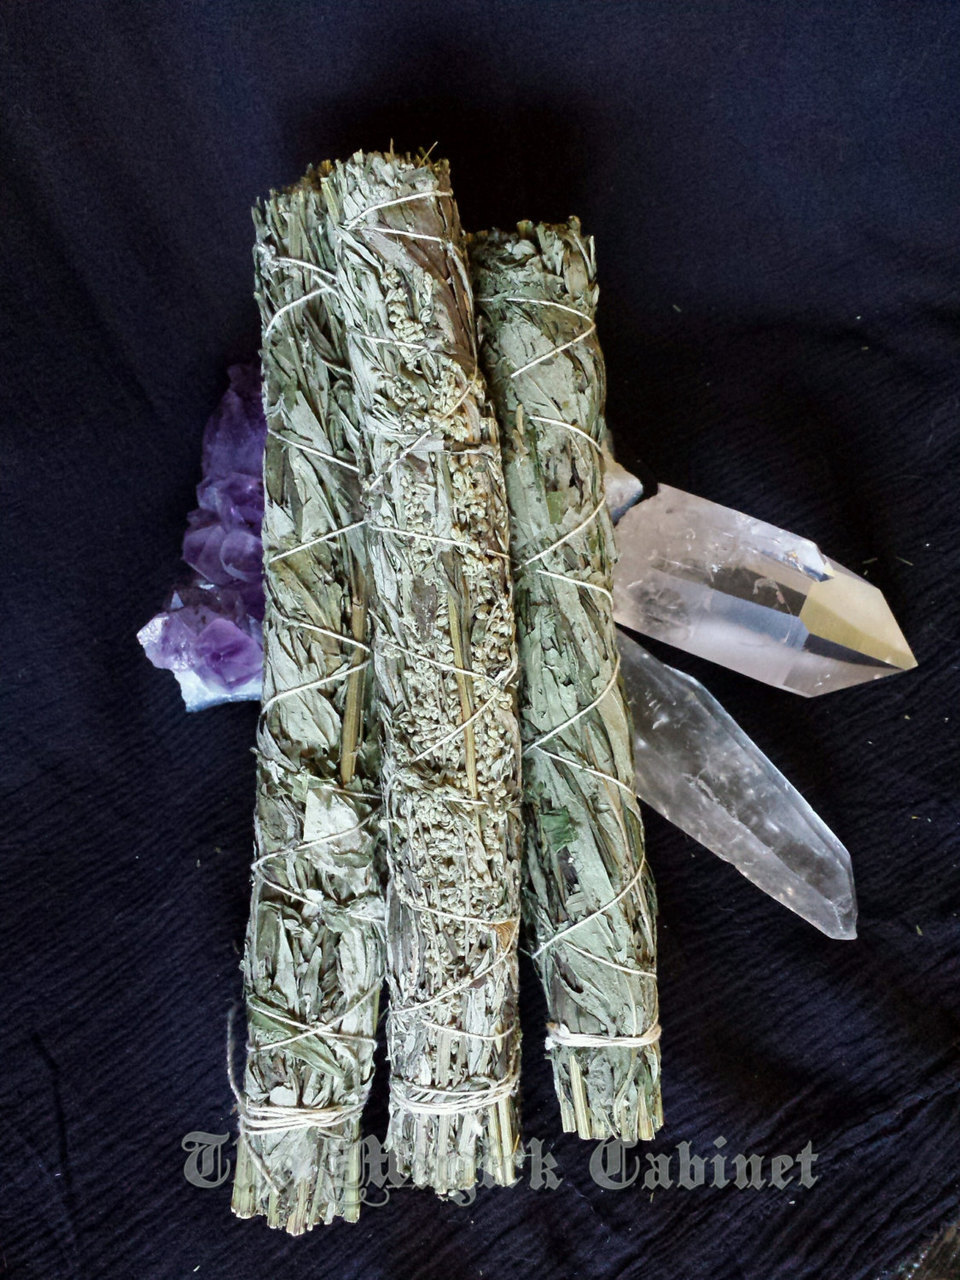 etsy, native american, and witchcraft image